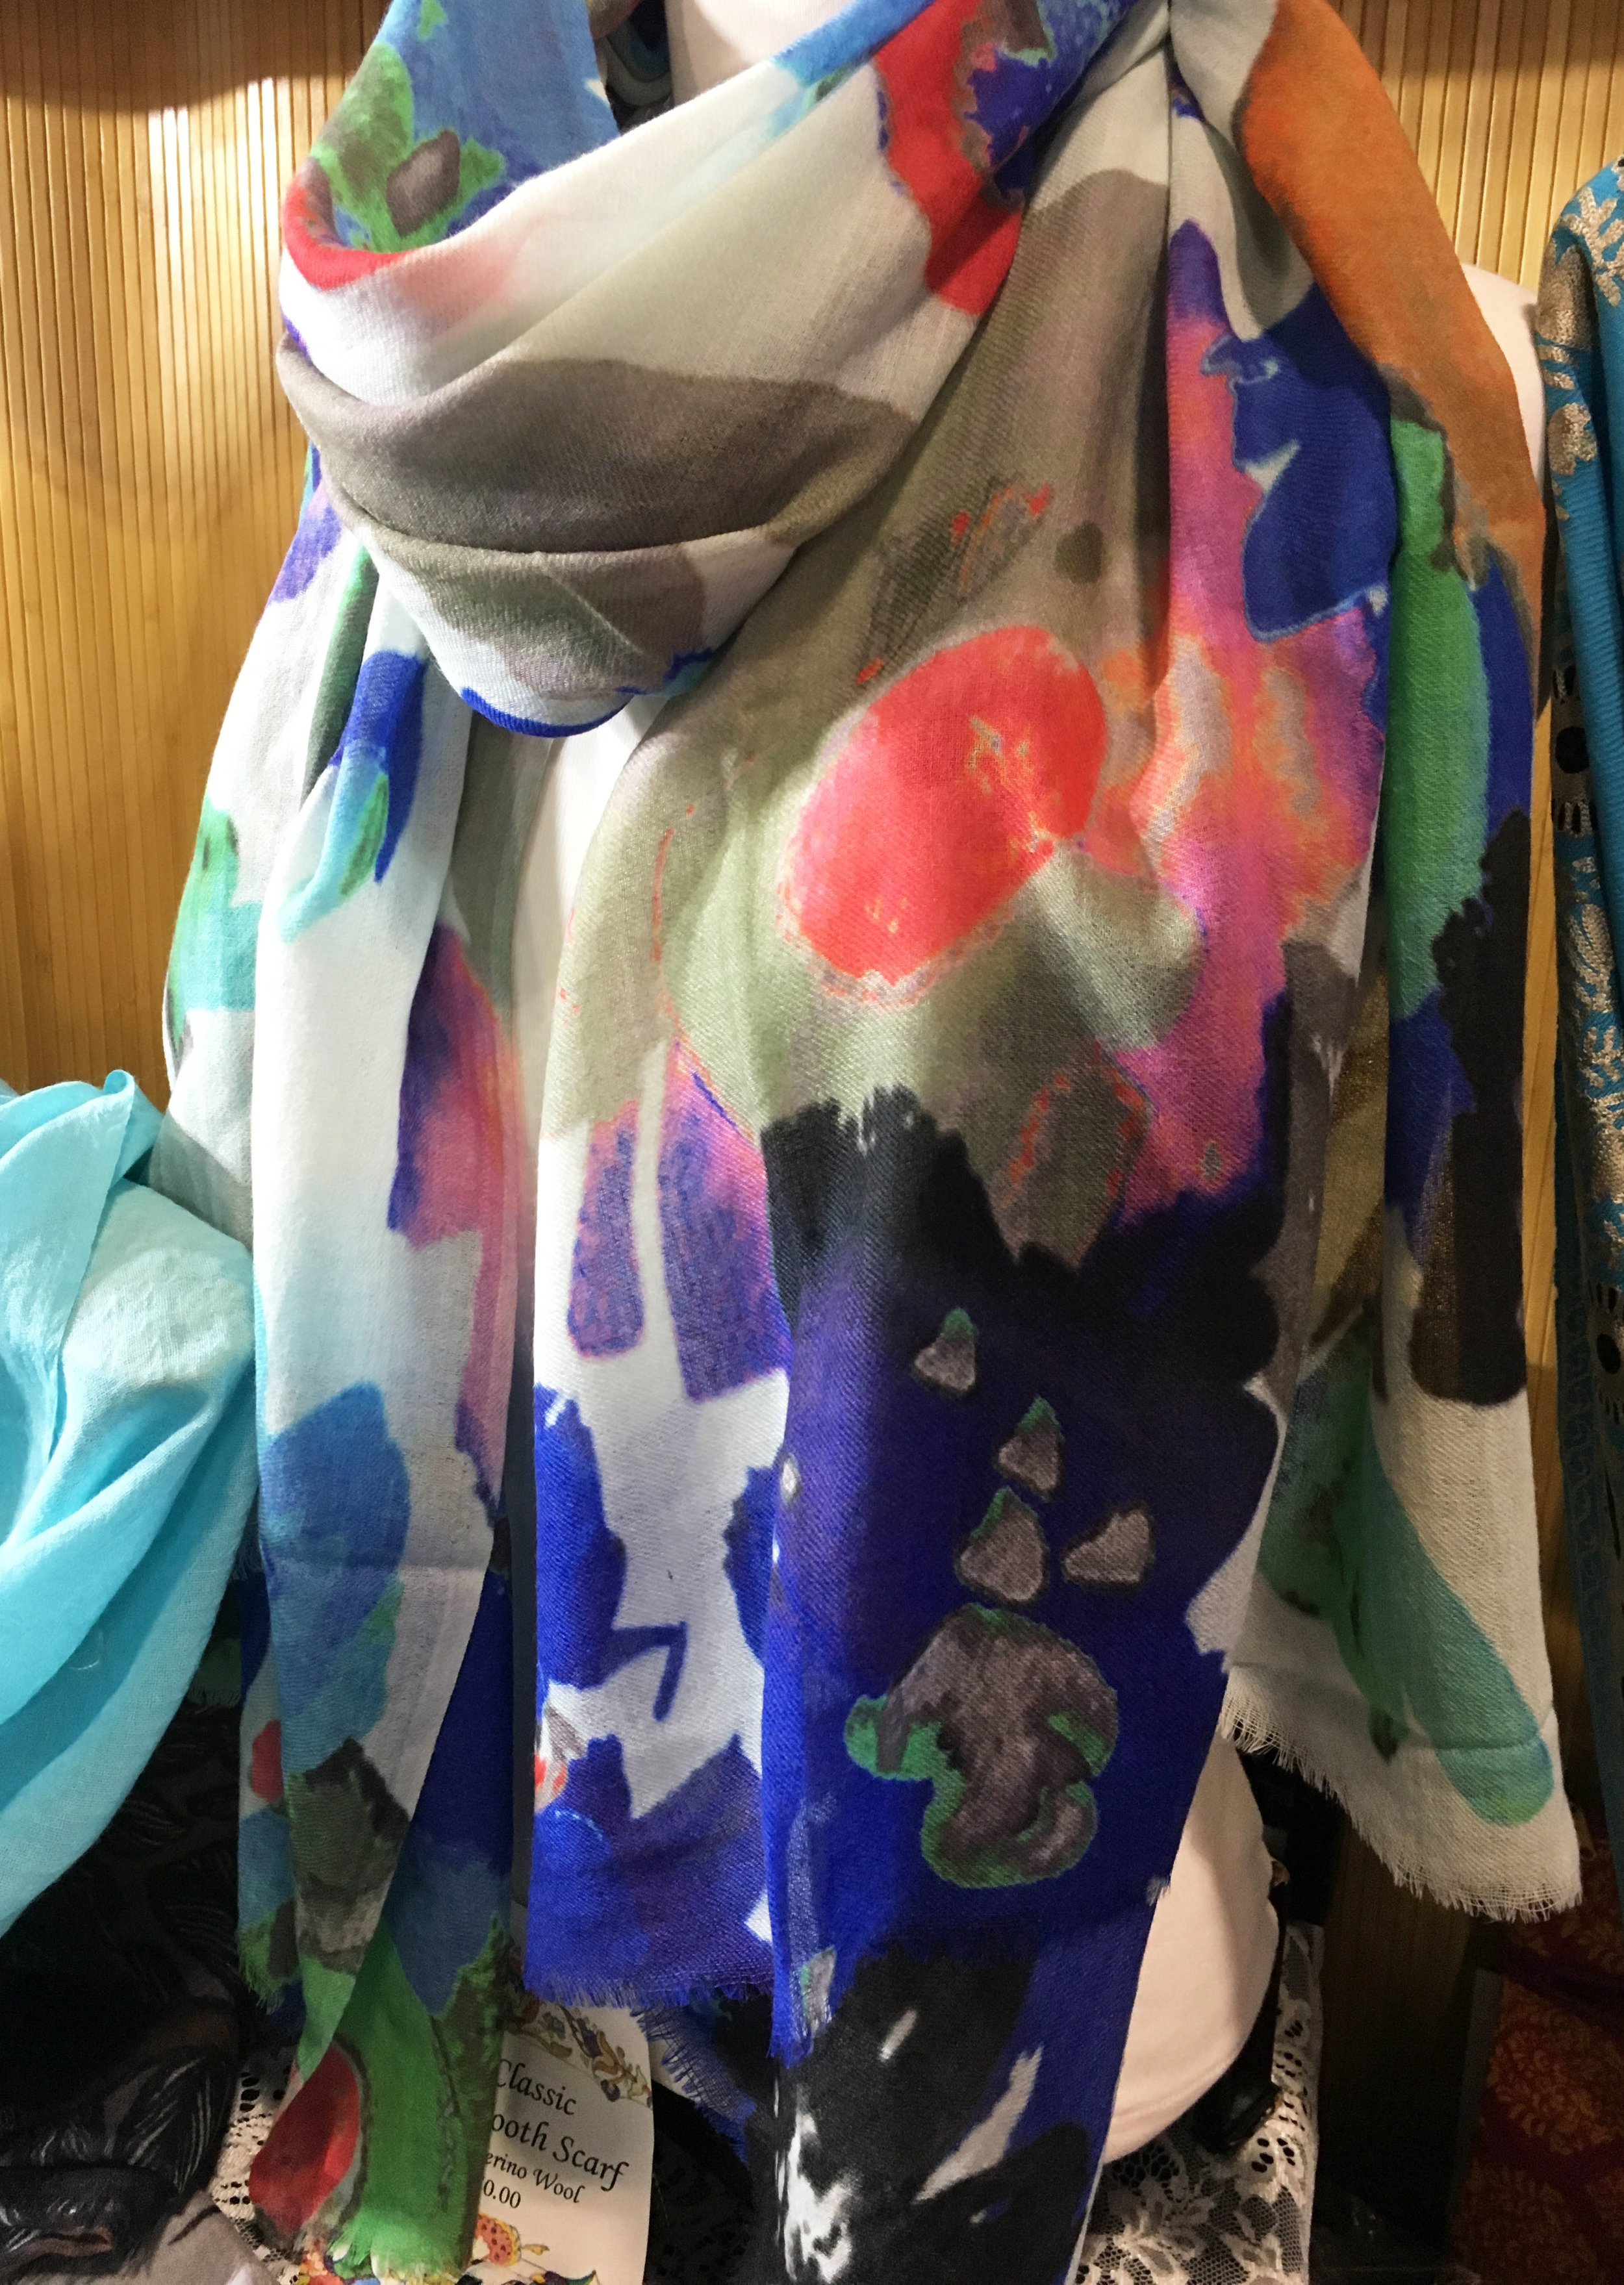 The beautiful Big Flower scarf on display to show the remarkable colors it has to offer